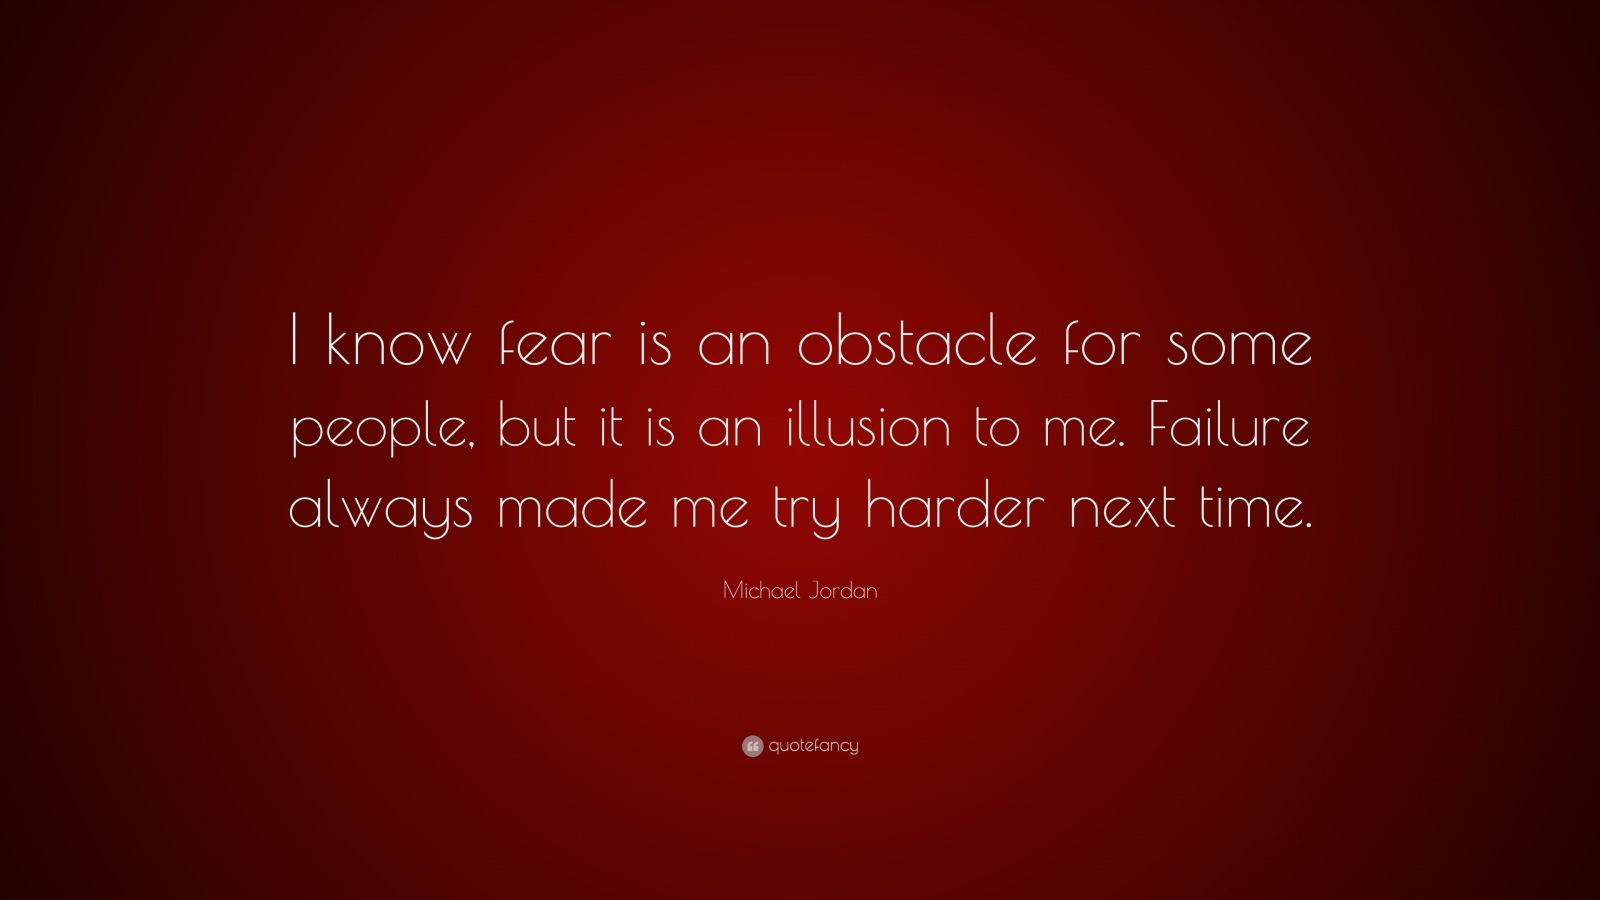 """Michael Jordan Quote: """"I know fear is an obstacle for some people, but it is an illusion to me. Failure always made me try harder next time."""""""